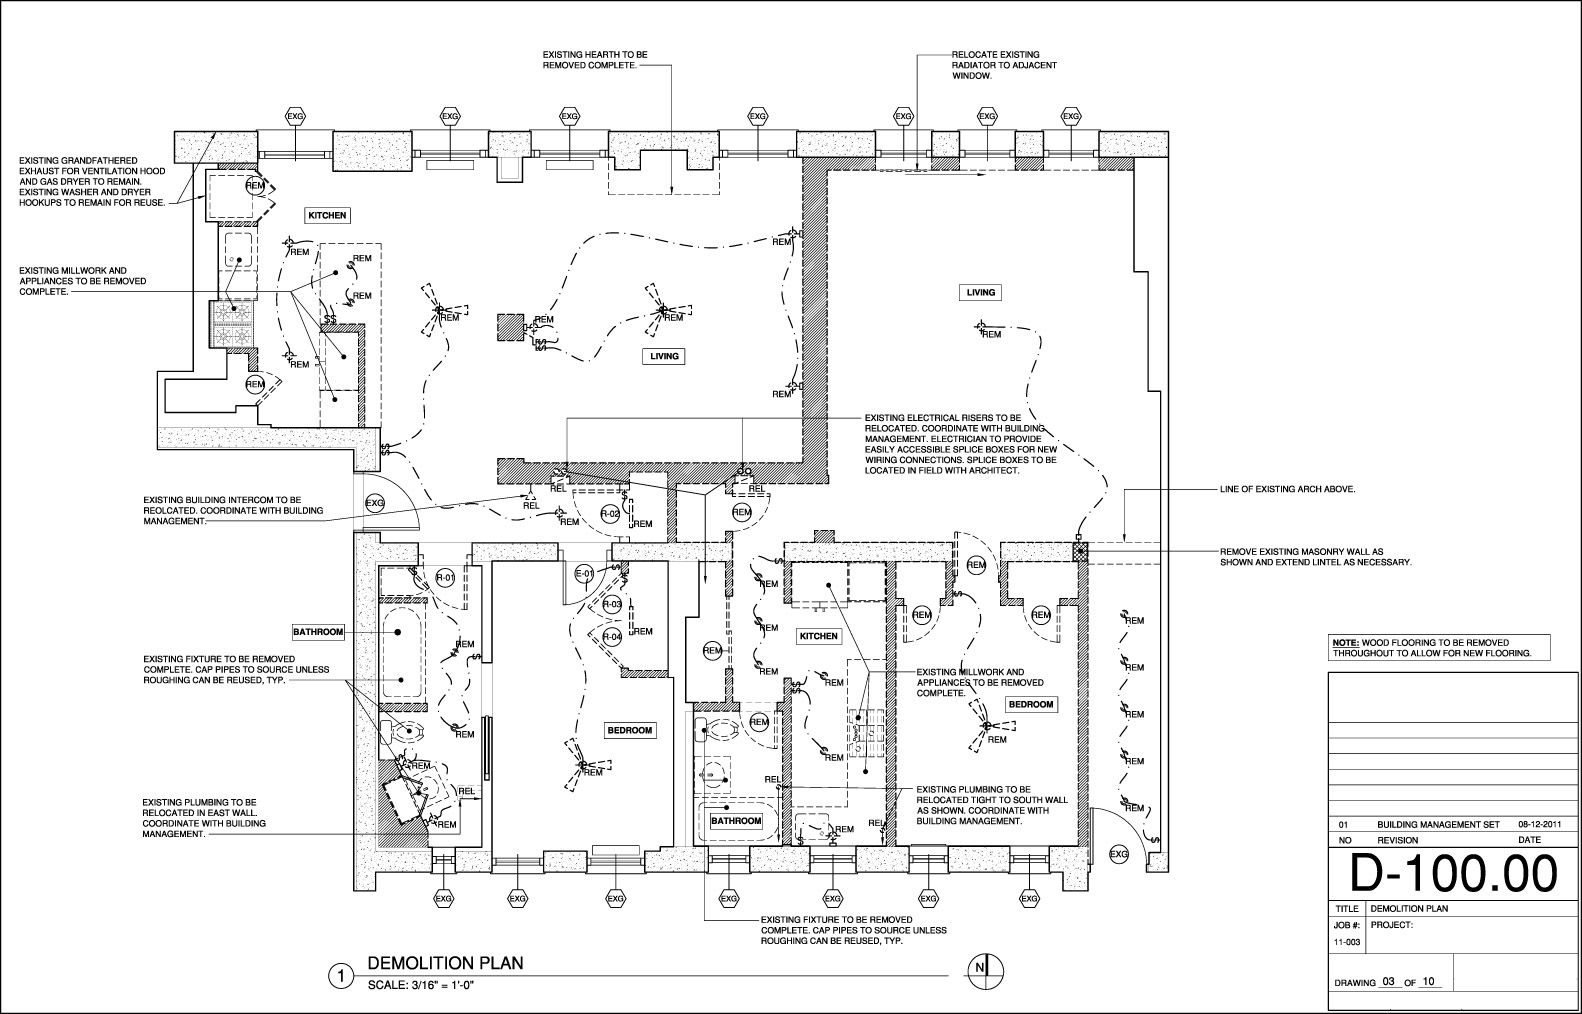 Demolition plan construction documents pinterest for How to get floor plans of an existing building